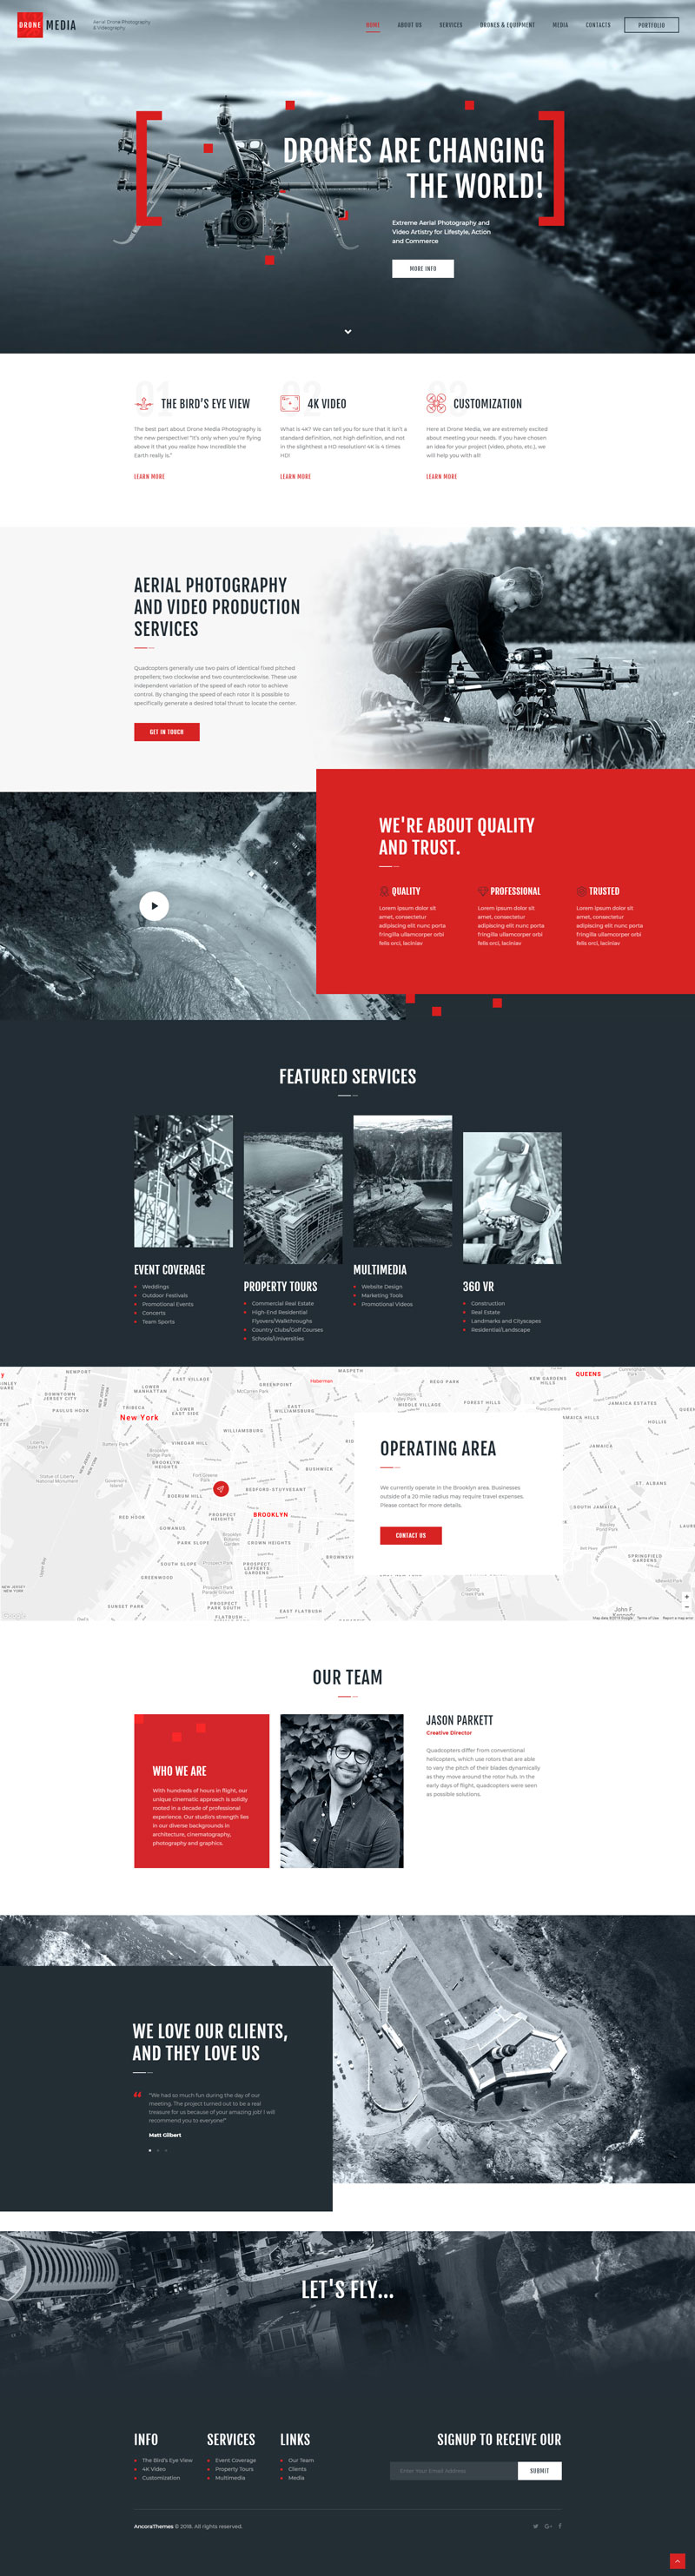 Drone-Media-Aerial-Photography-&-Videography-WordPress-Theme